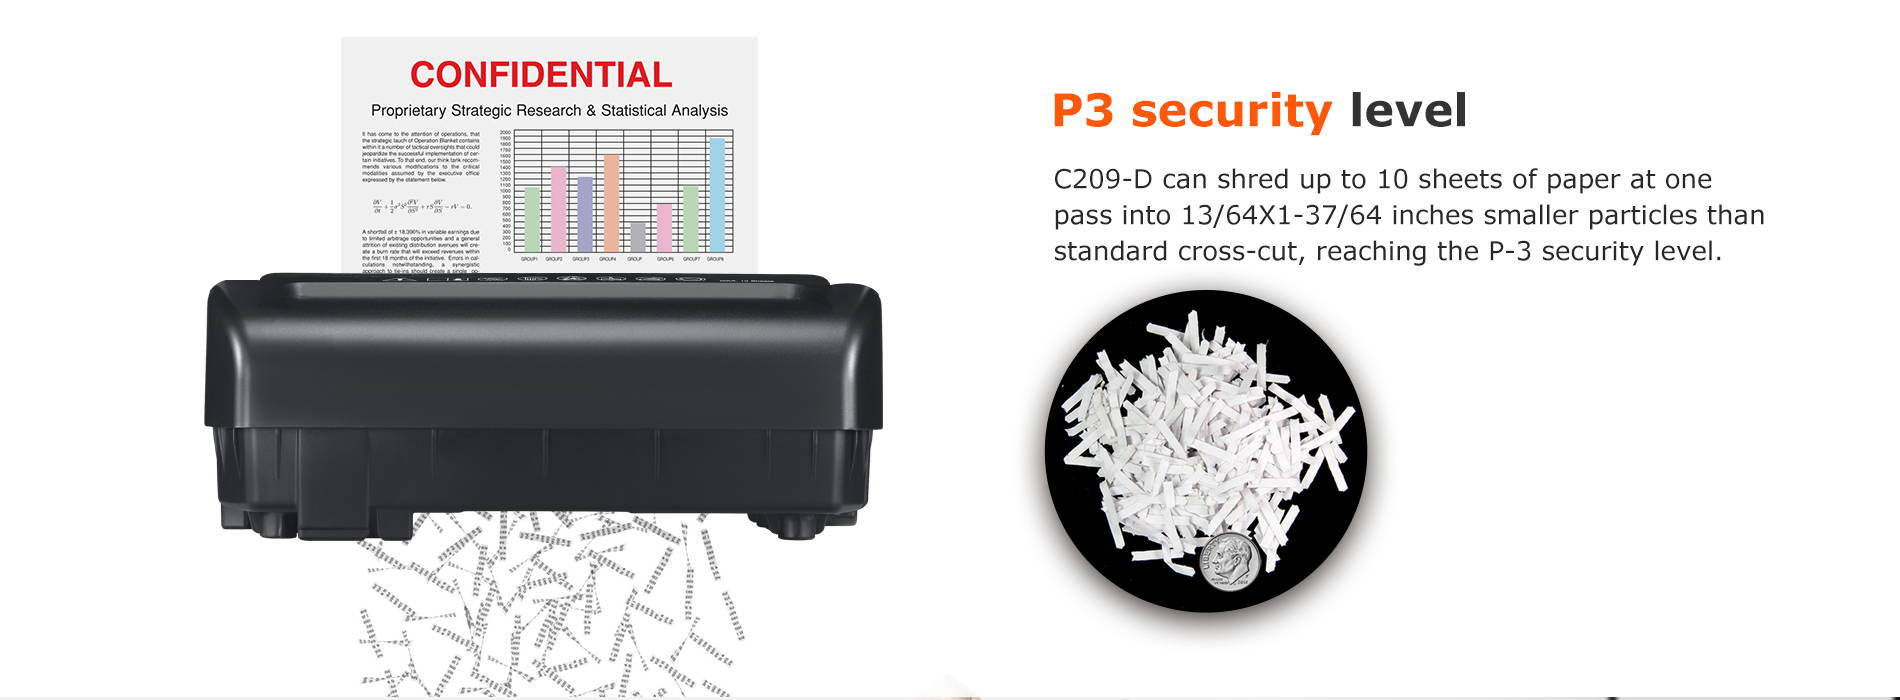 P3 security level C209-D can shred up to 10 sheets of paper at one pass into 13/64X1-37/64 inches smaller particles than standard cross-cut, reaching the P-3 security level.